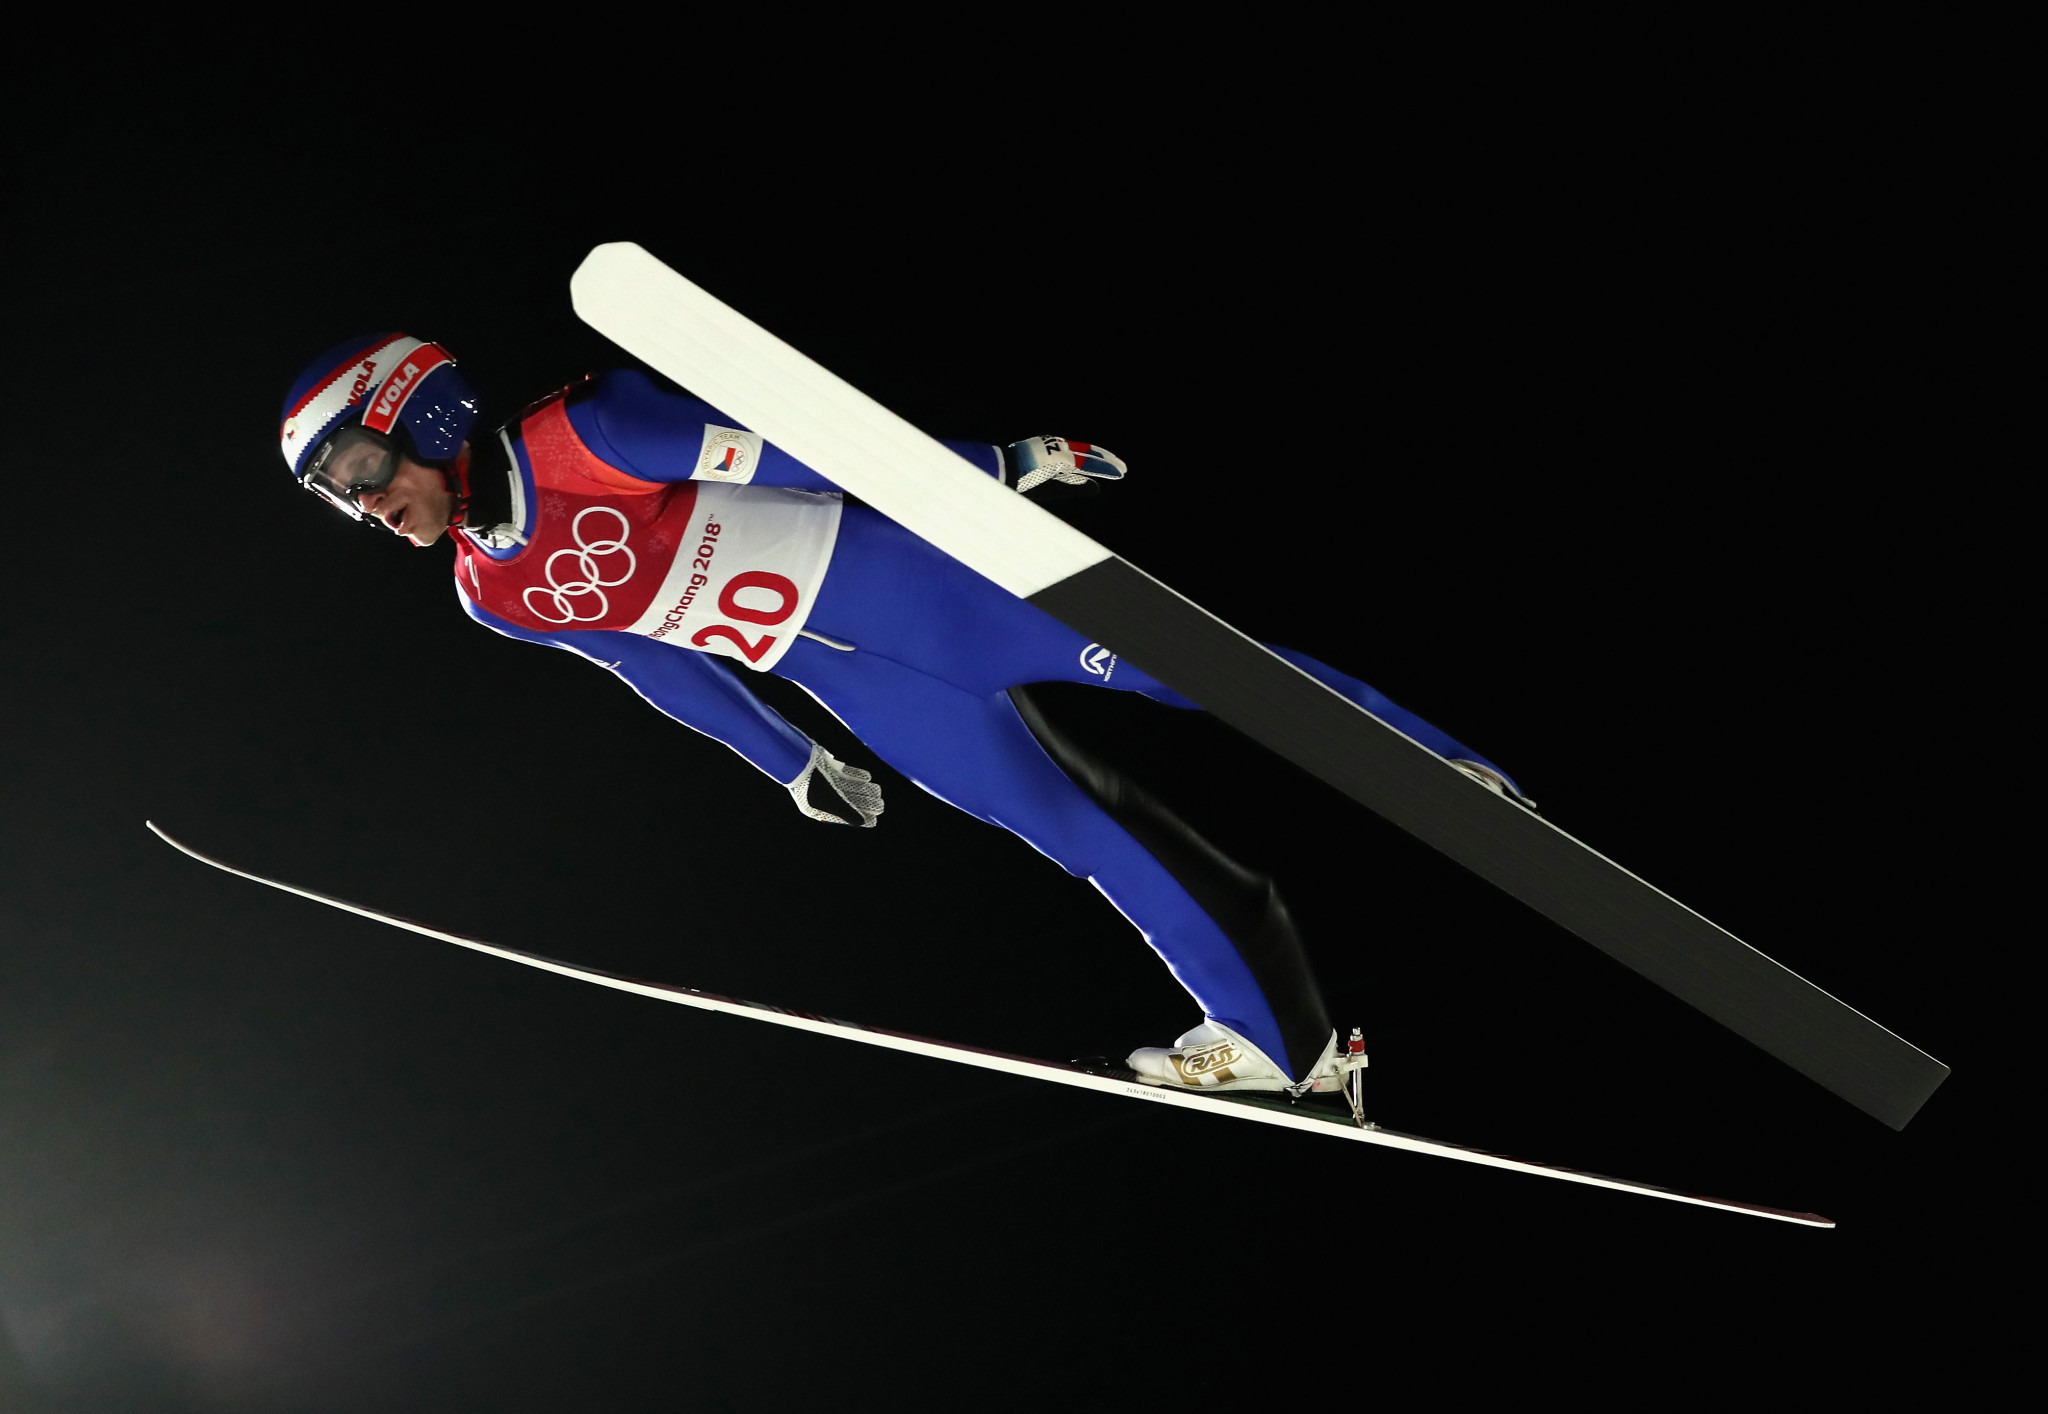 Czech ski jumping has a new men's head coach after a poor season ©Getty Images